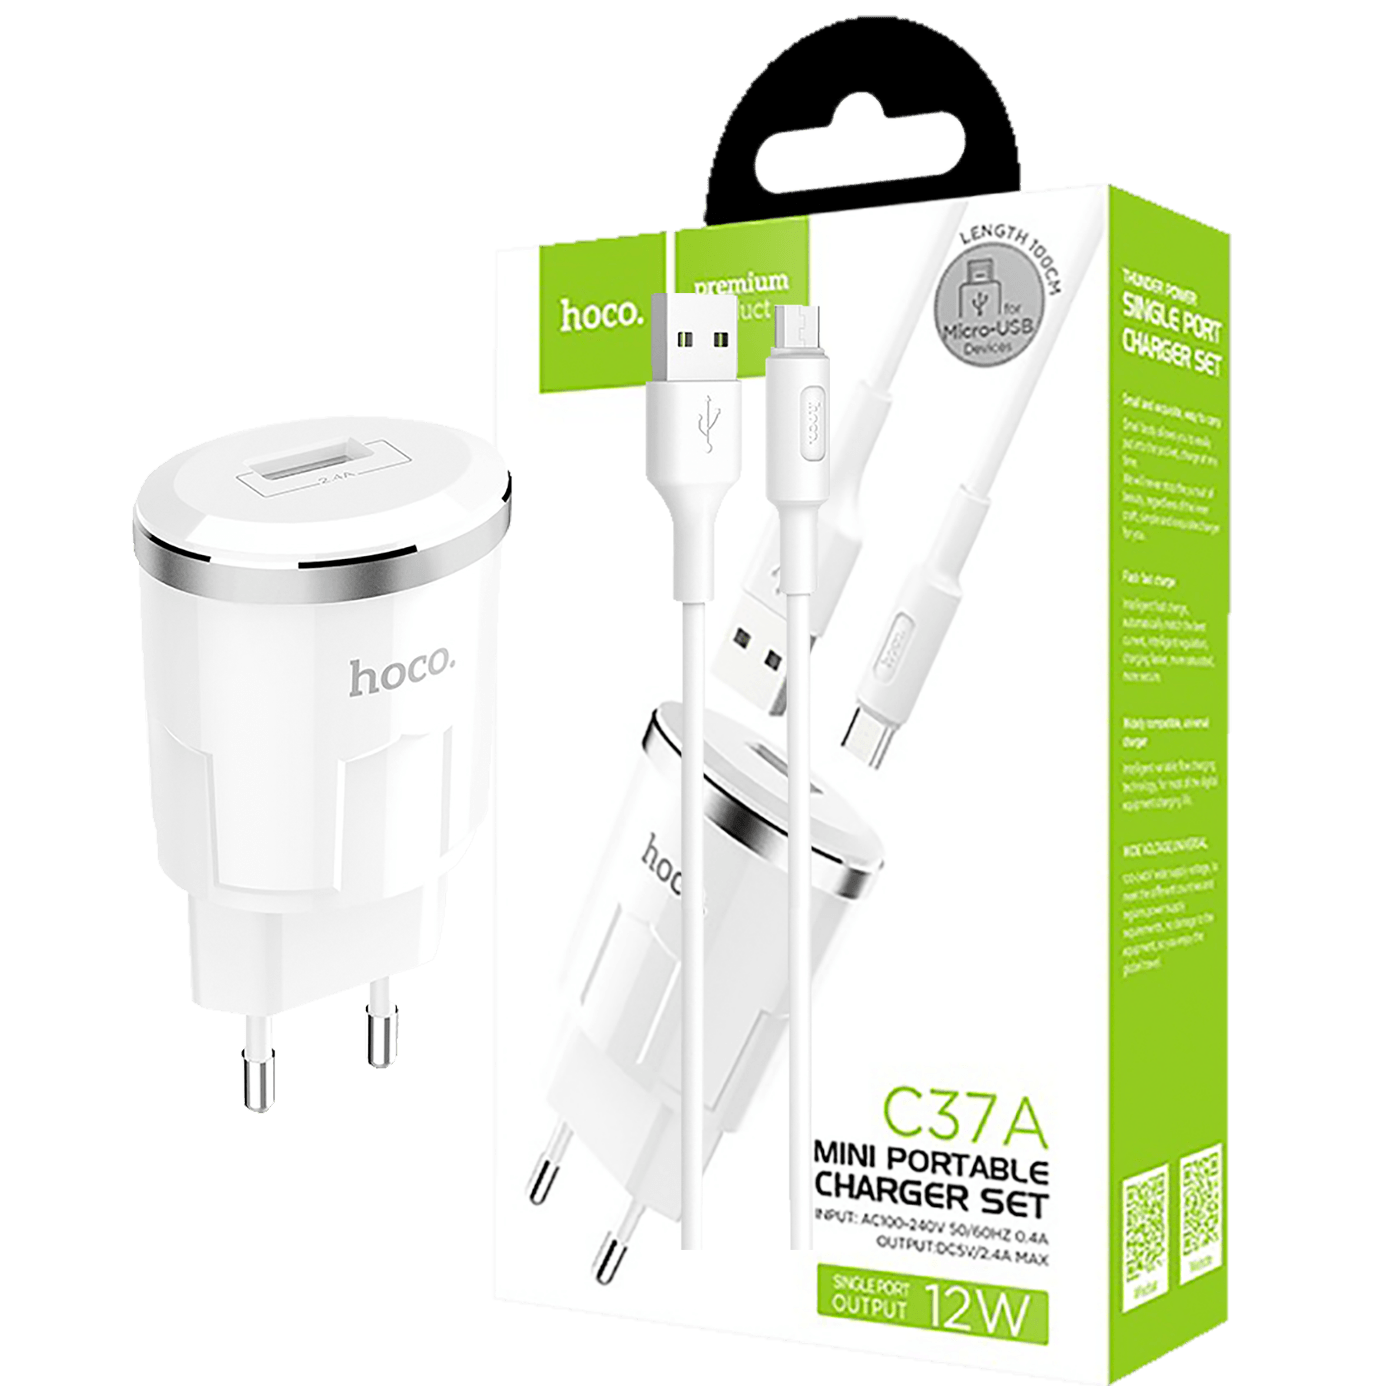 hoco. - C37A Thunder power, set, microUSB